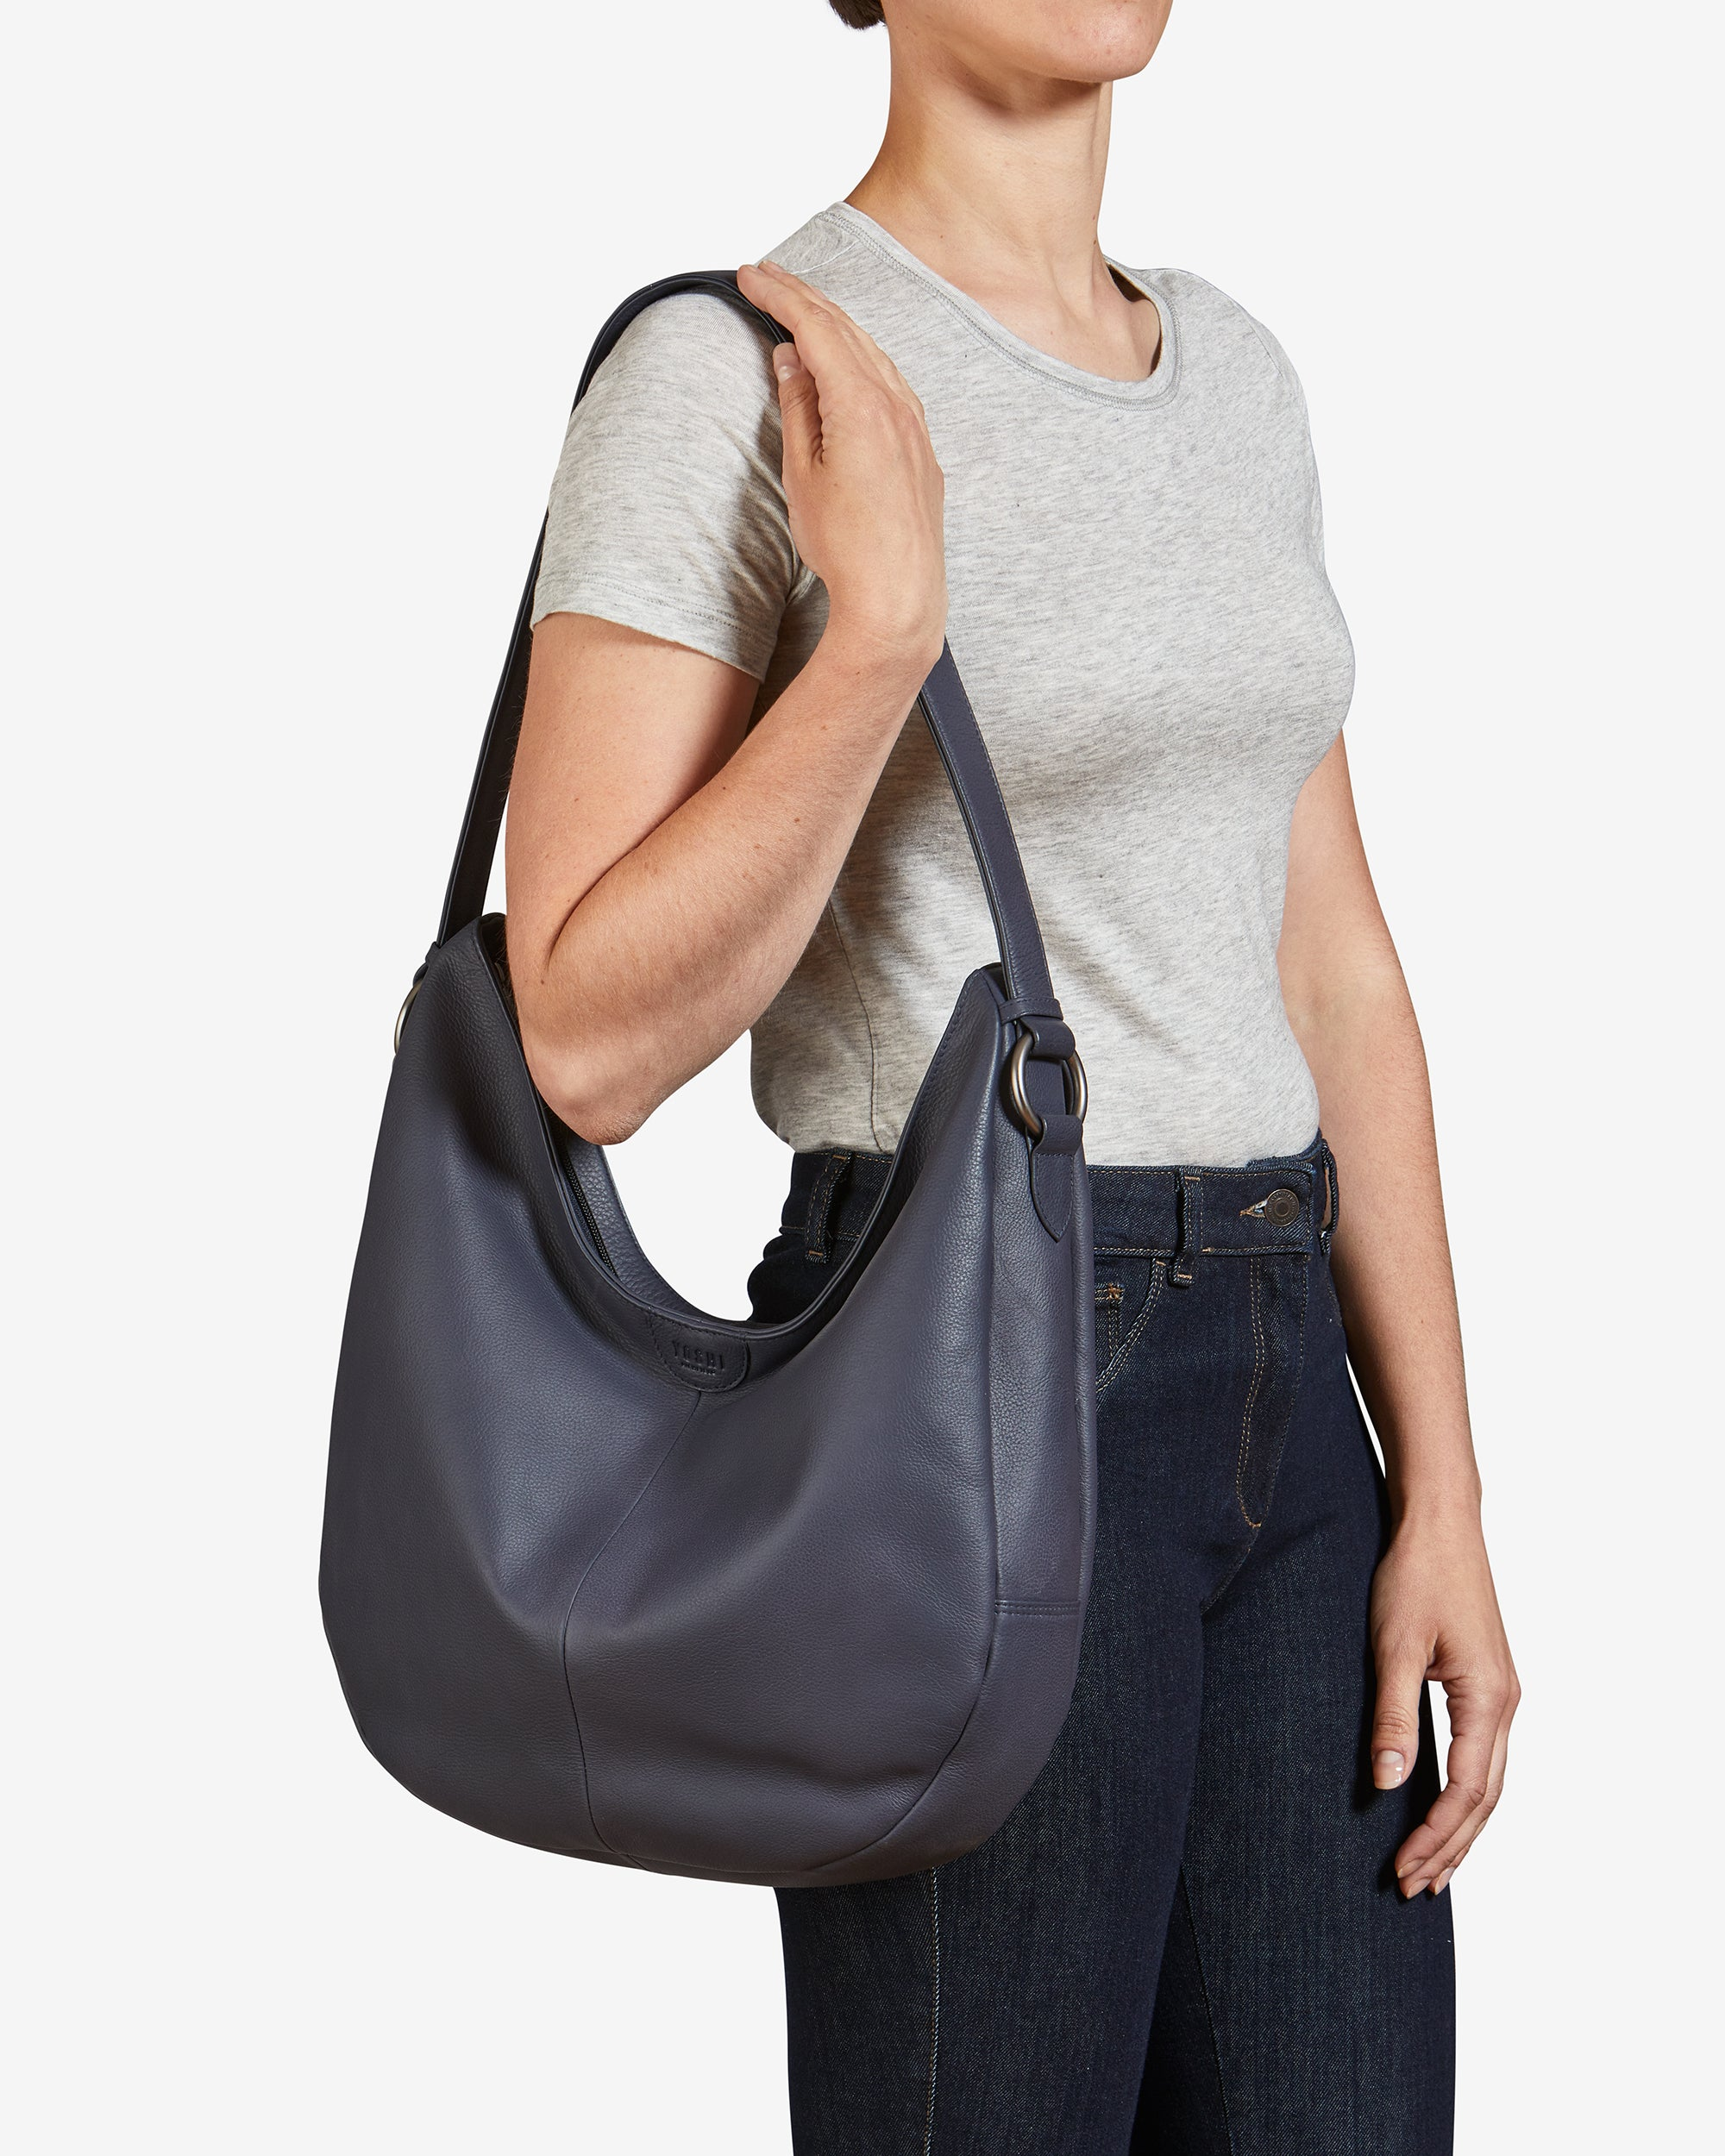 ce863fd2fcd Ludlow Navy Leather Shoulder Bag